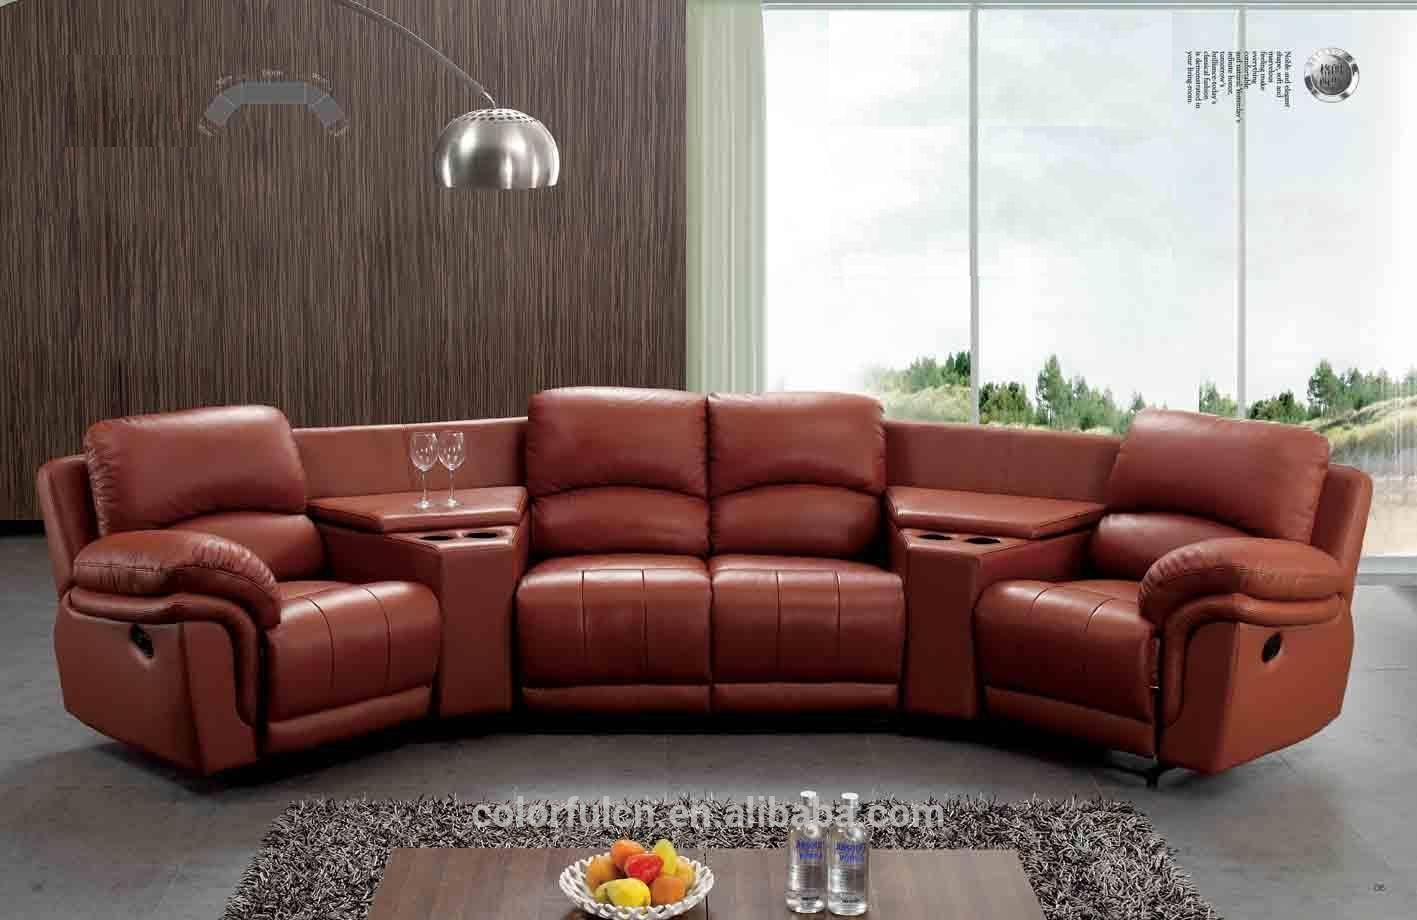 Semi Circle Leather Sofa, Semi Circle Leather Sofa Suppliers And Regarding Circle Sofa Chairs (View 23 of 30)